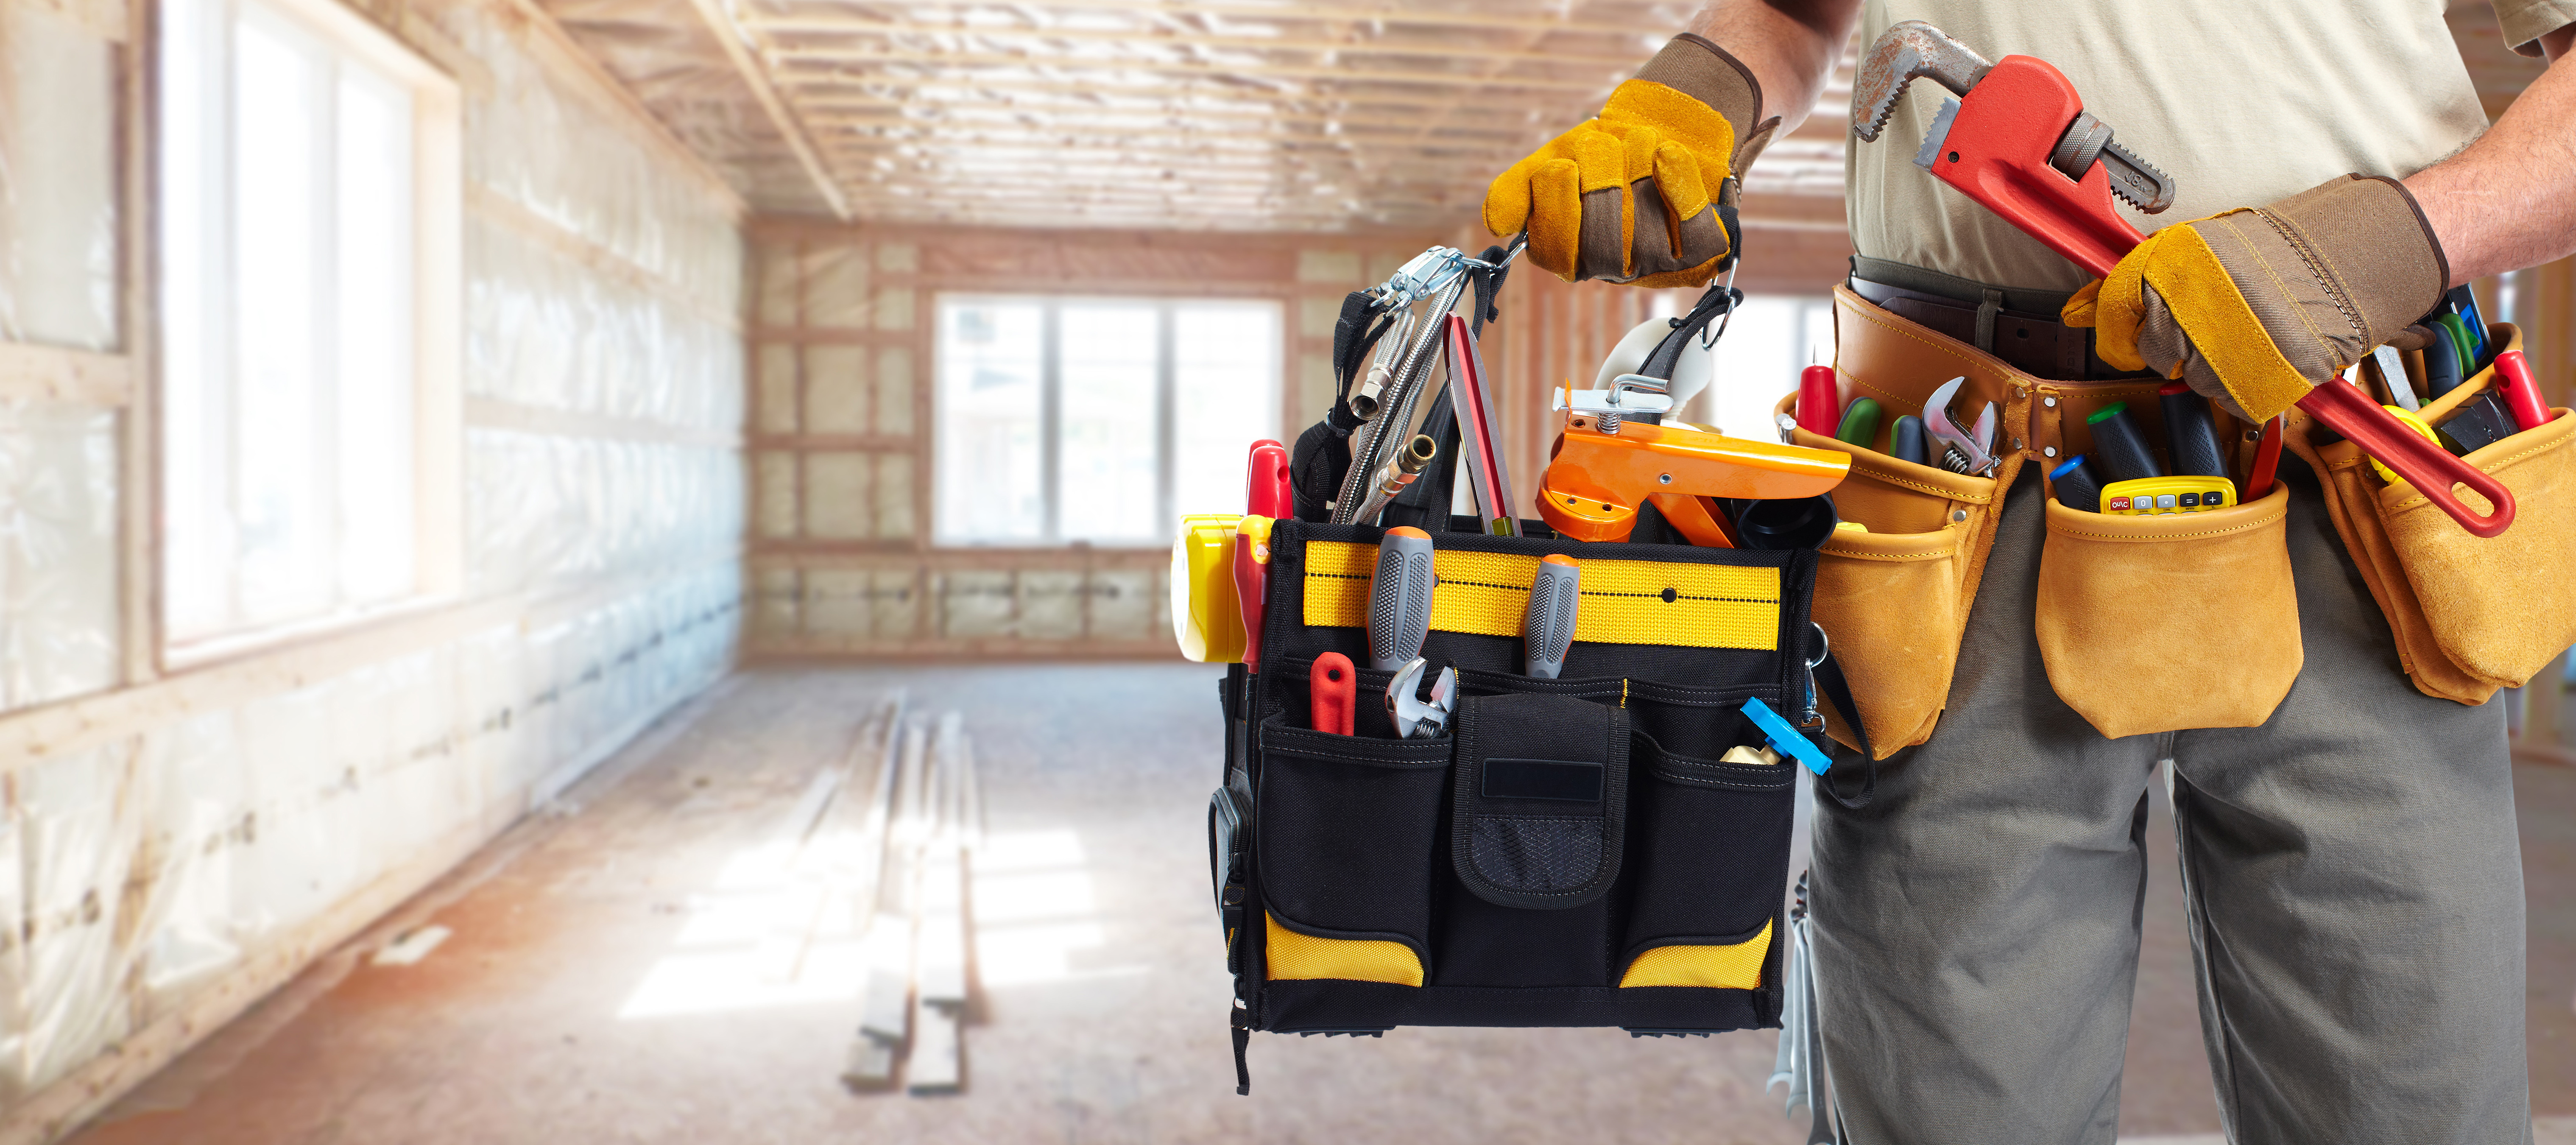 5 New Contractor Tools To Invest In This Year | Alco